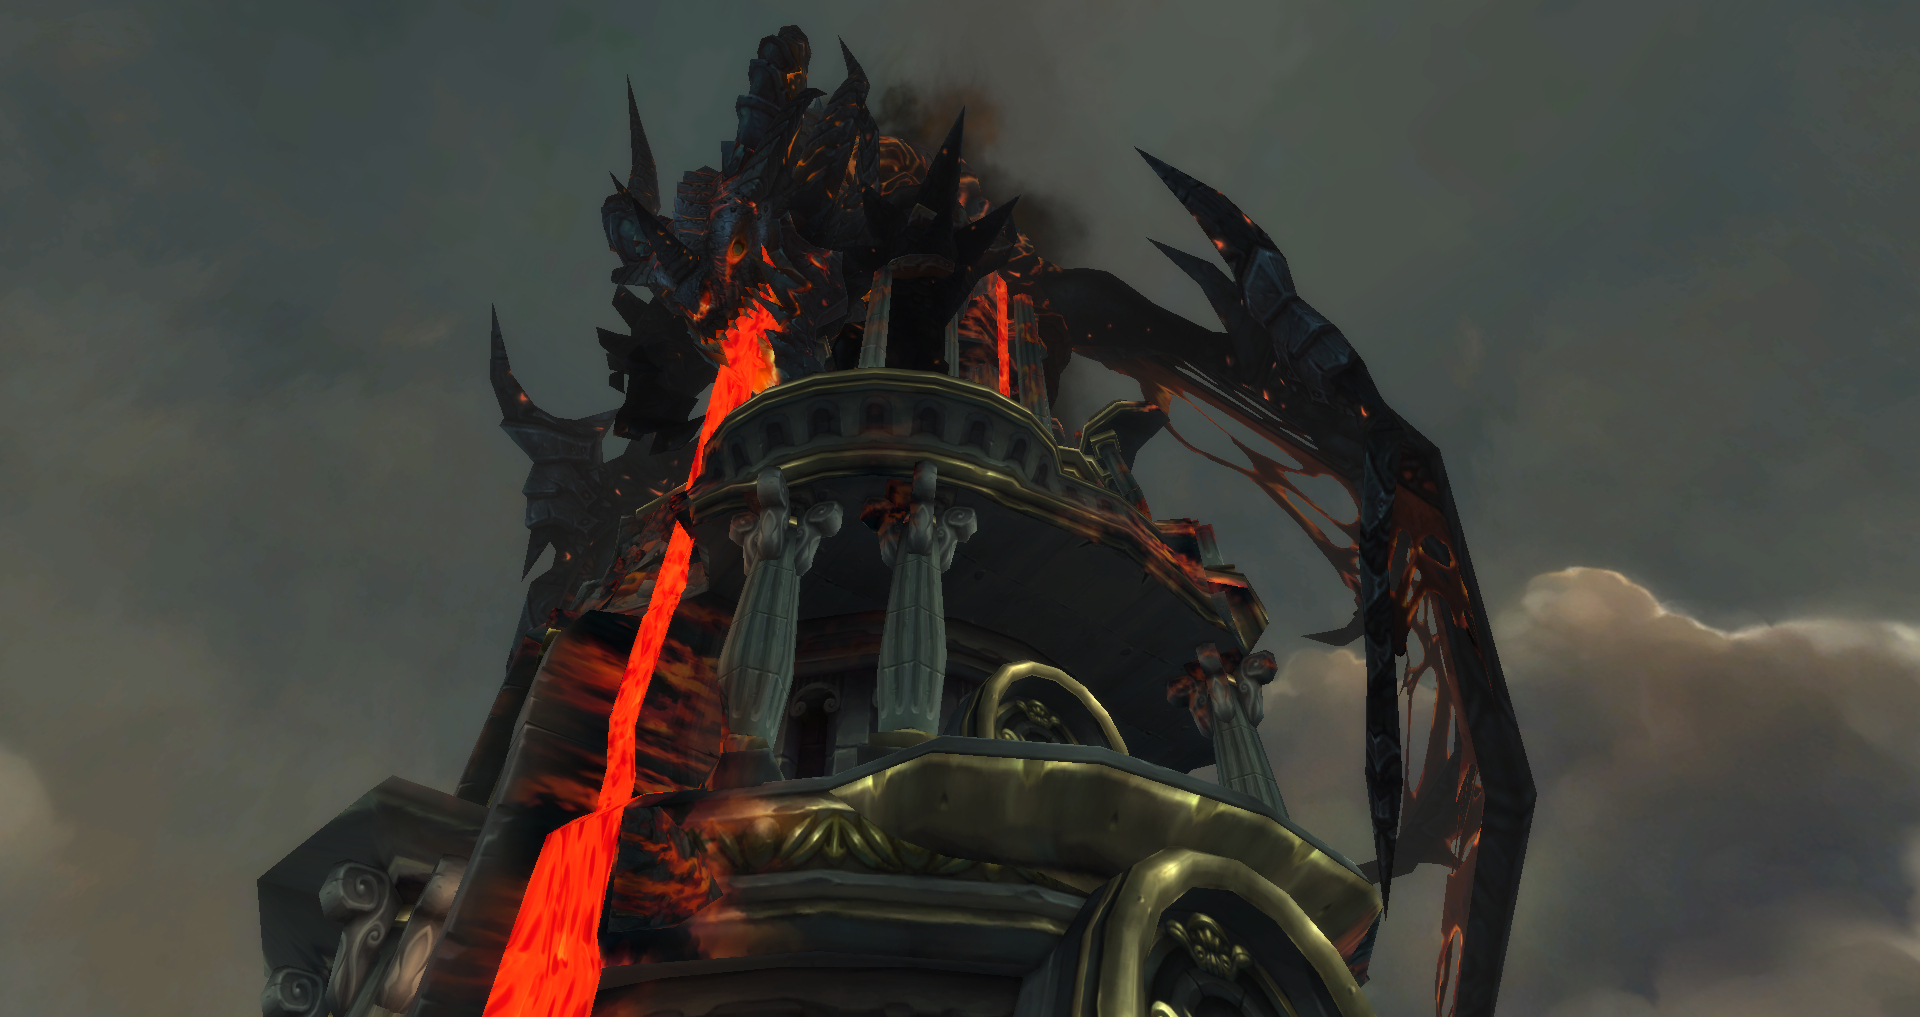 Deathwing corpse end time